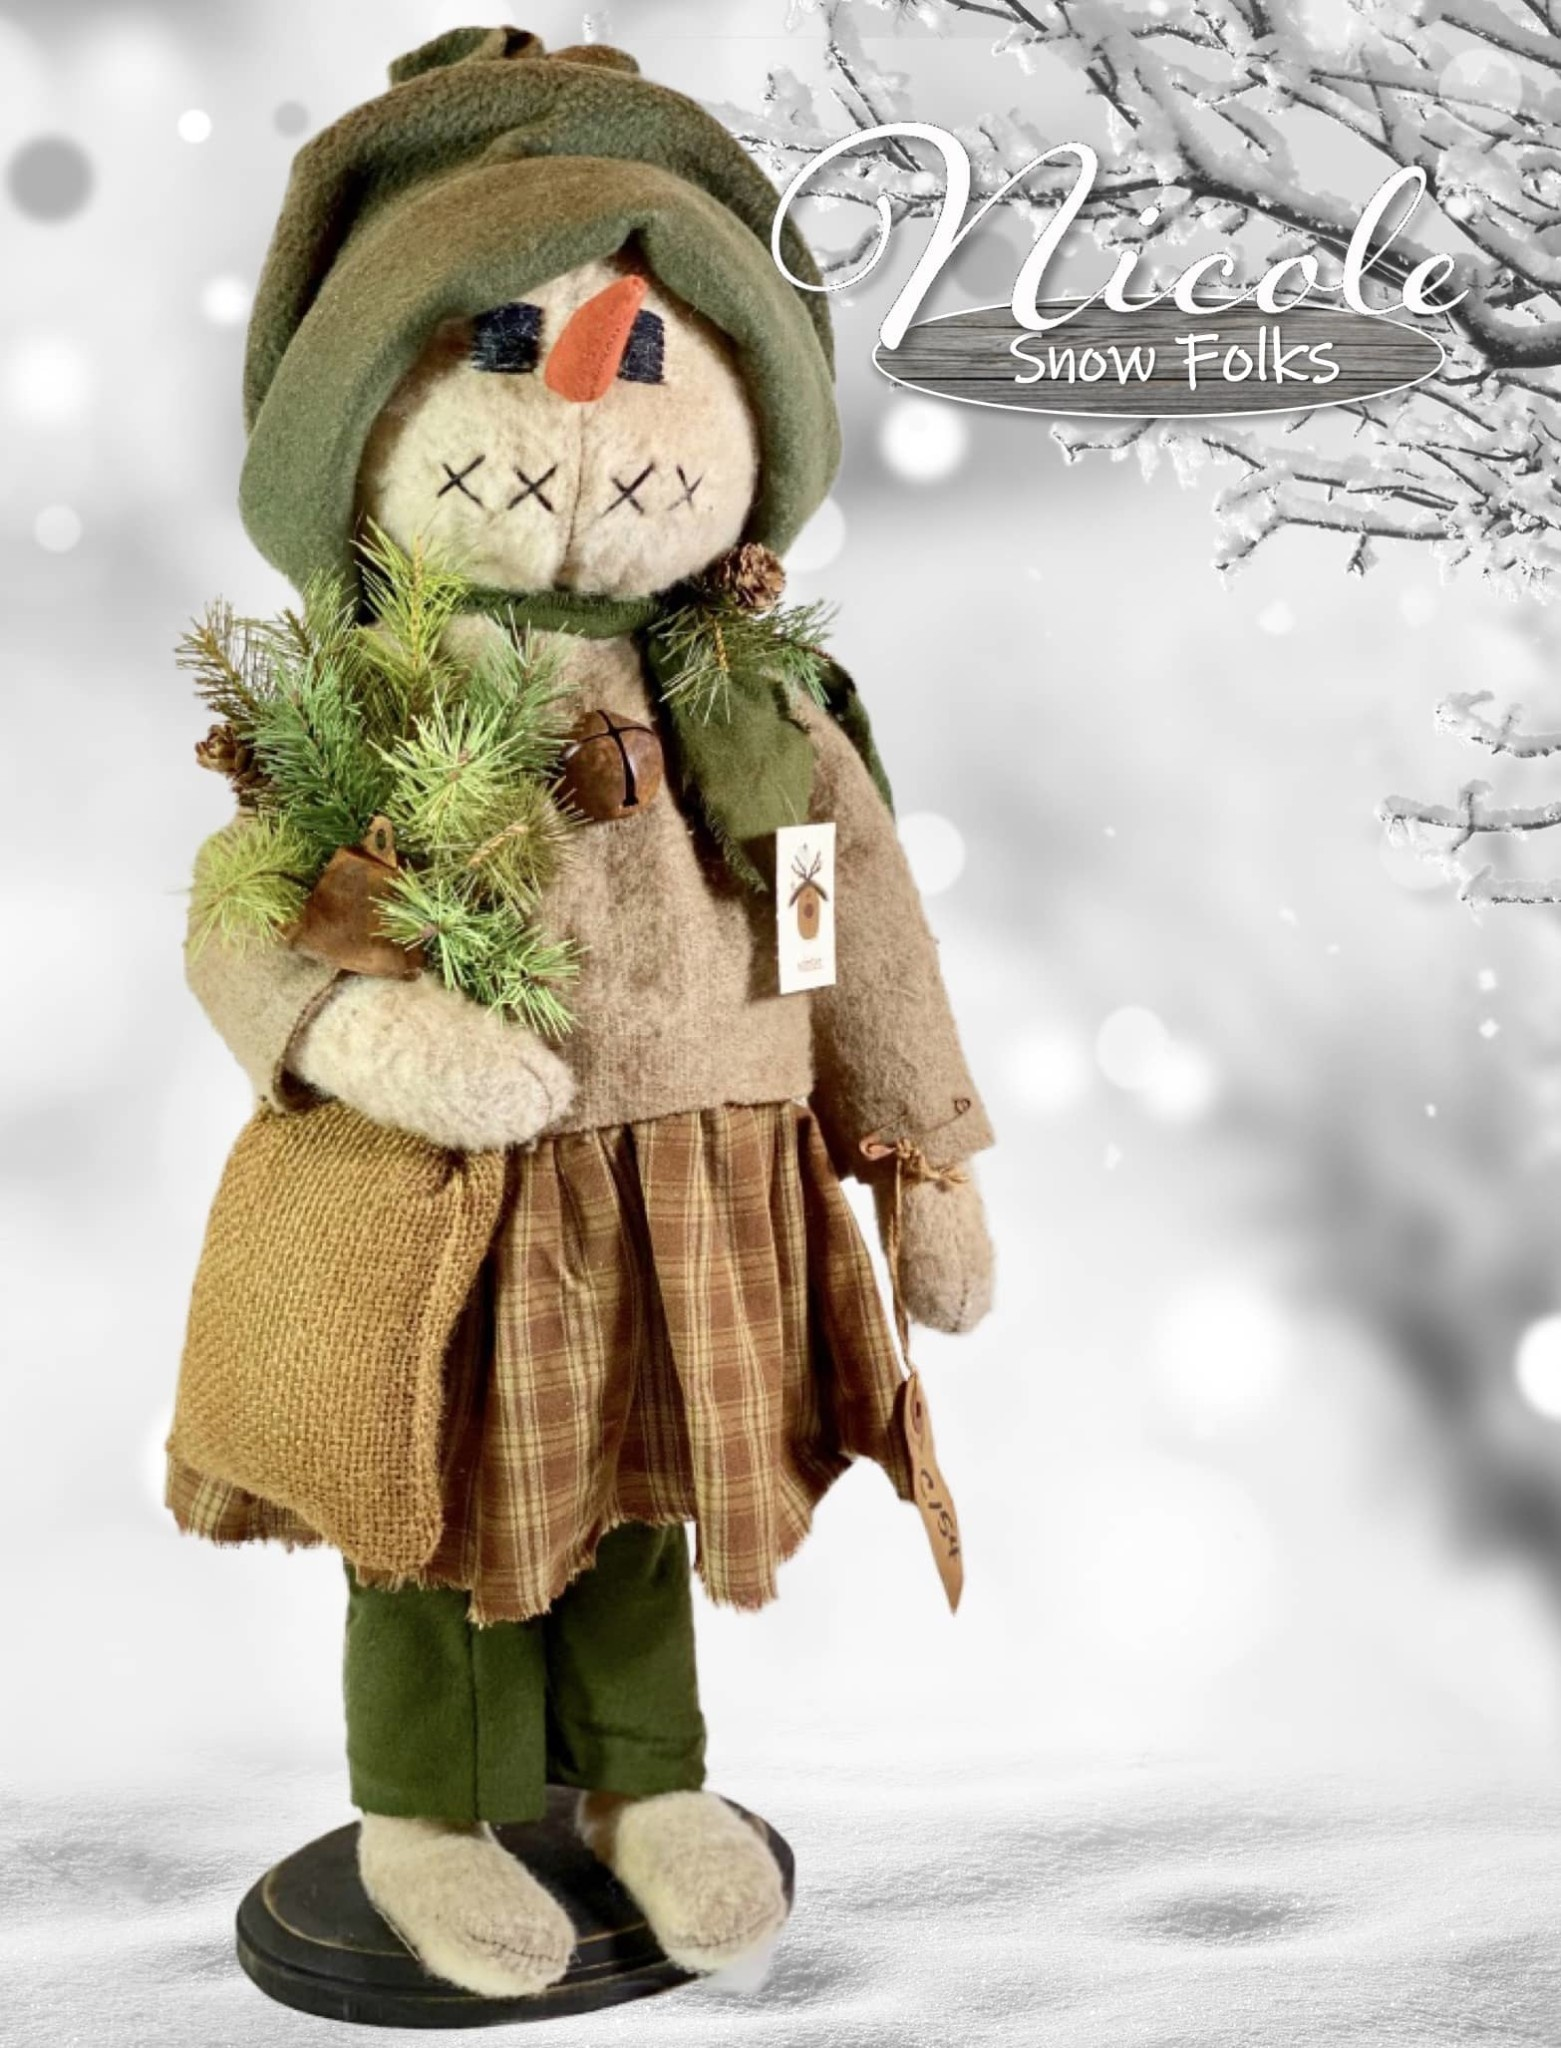 Nana's Farmhouse Nicole Snow Girl Tan Sweater Holding Burlap Sack with Greens & Bell